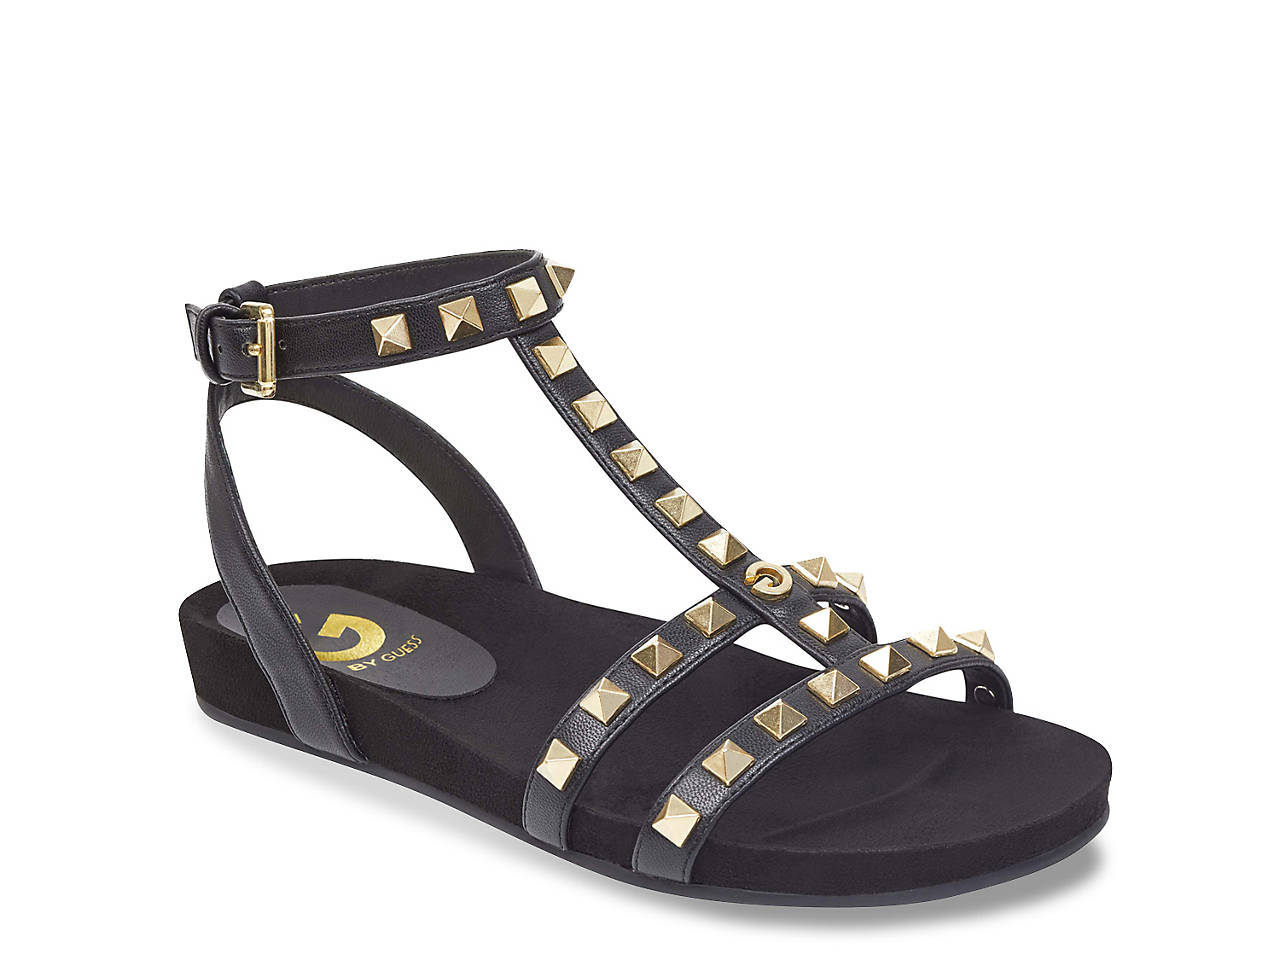 cb593f08ba90 G by GUESS Sherri Gladiator Sandal Women s Shoes